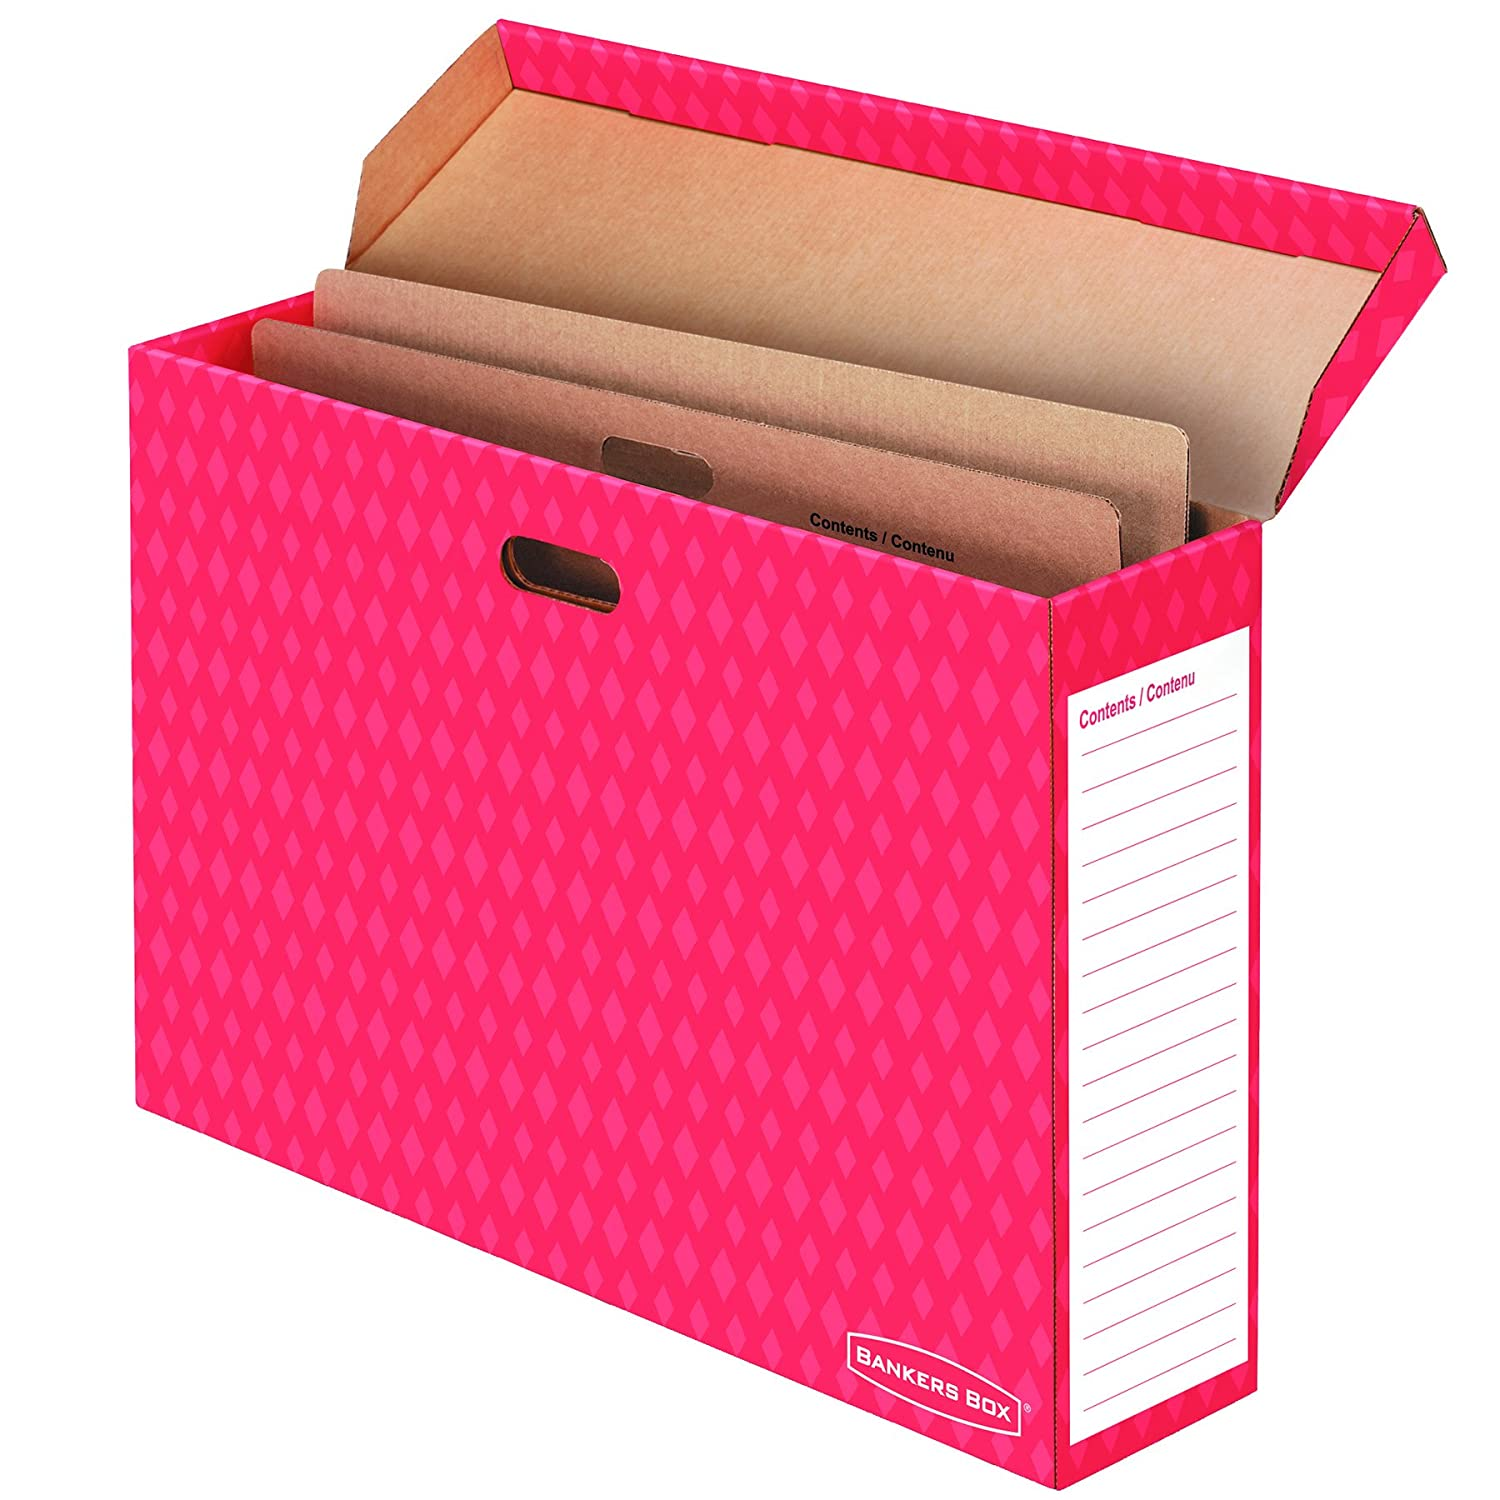 Delightful Amazon.com : Bankers Box Classroom Bulletin Board Storage Box 19.13 X 28.63  X 7.50 : Themed Classroom Displays And Decoration : Office Products